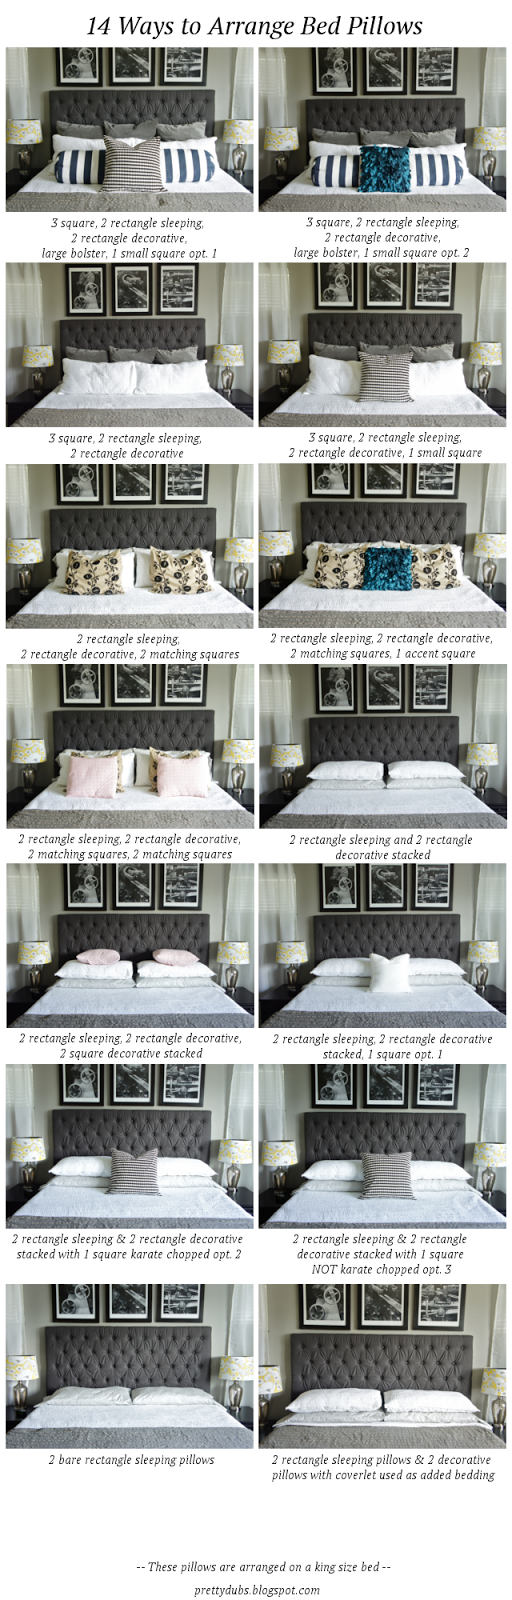 14 WAYS TO ARRANGE BED PILLOWS